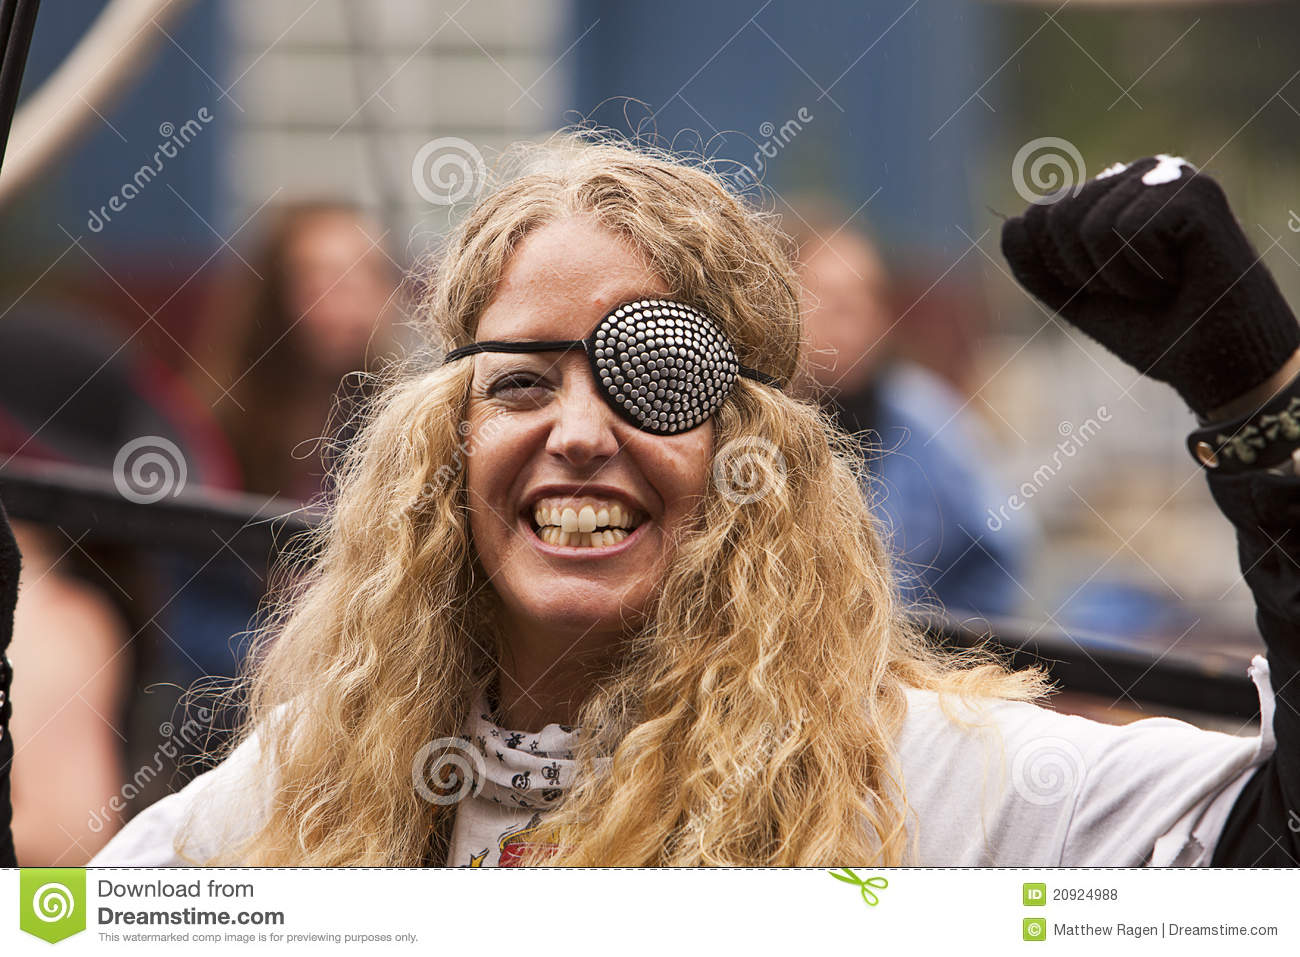 Woman With Eyepatch Editorial Stock Photo Image 20924988